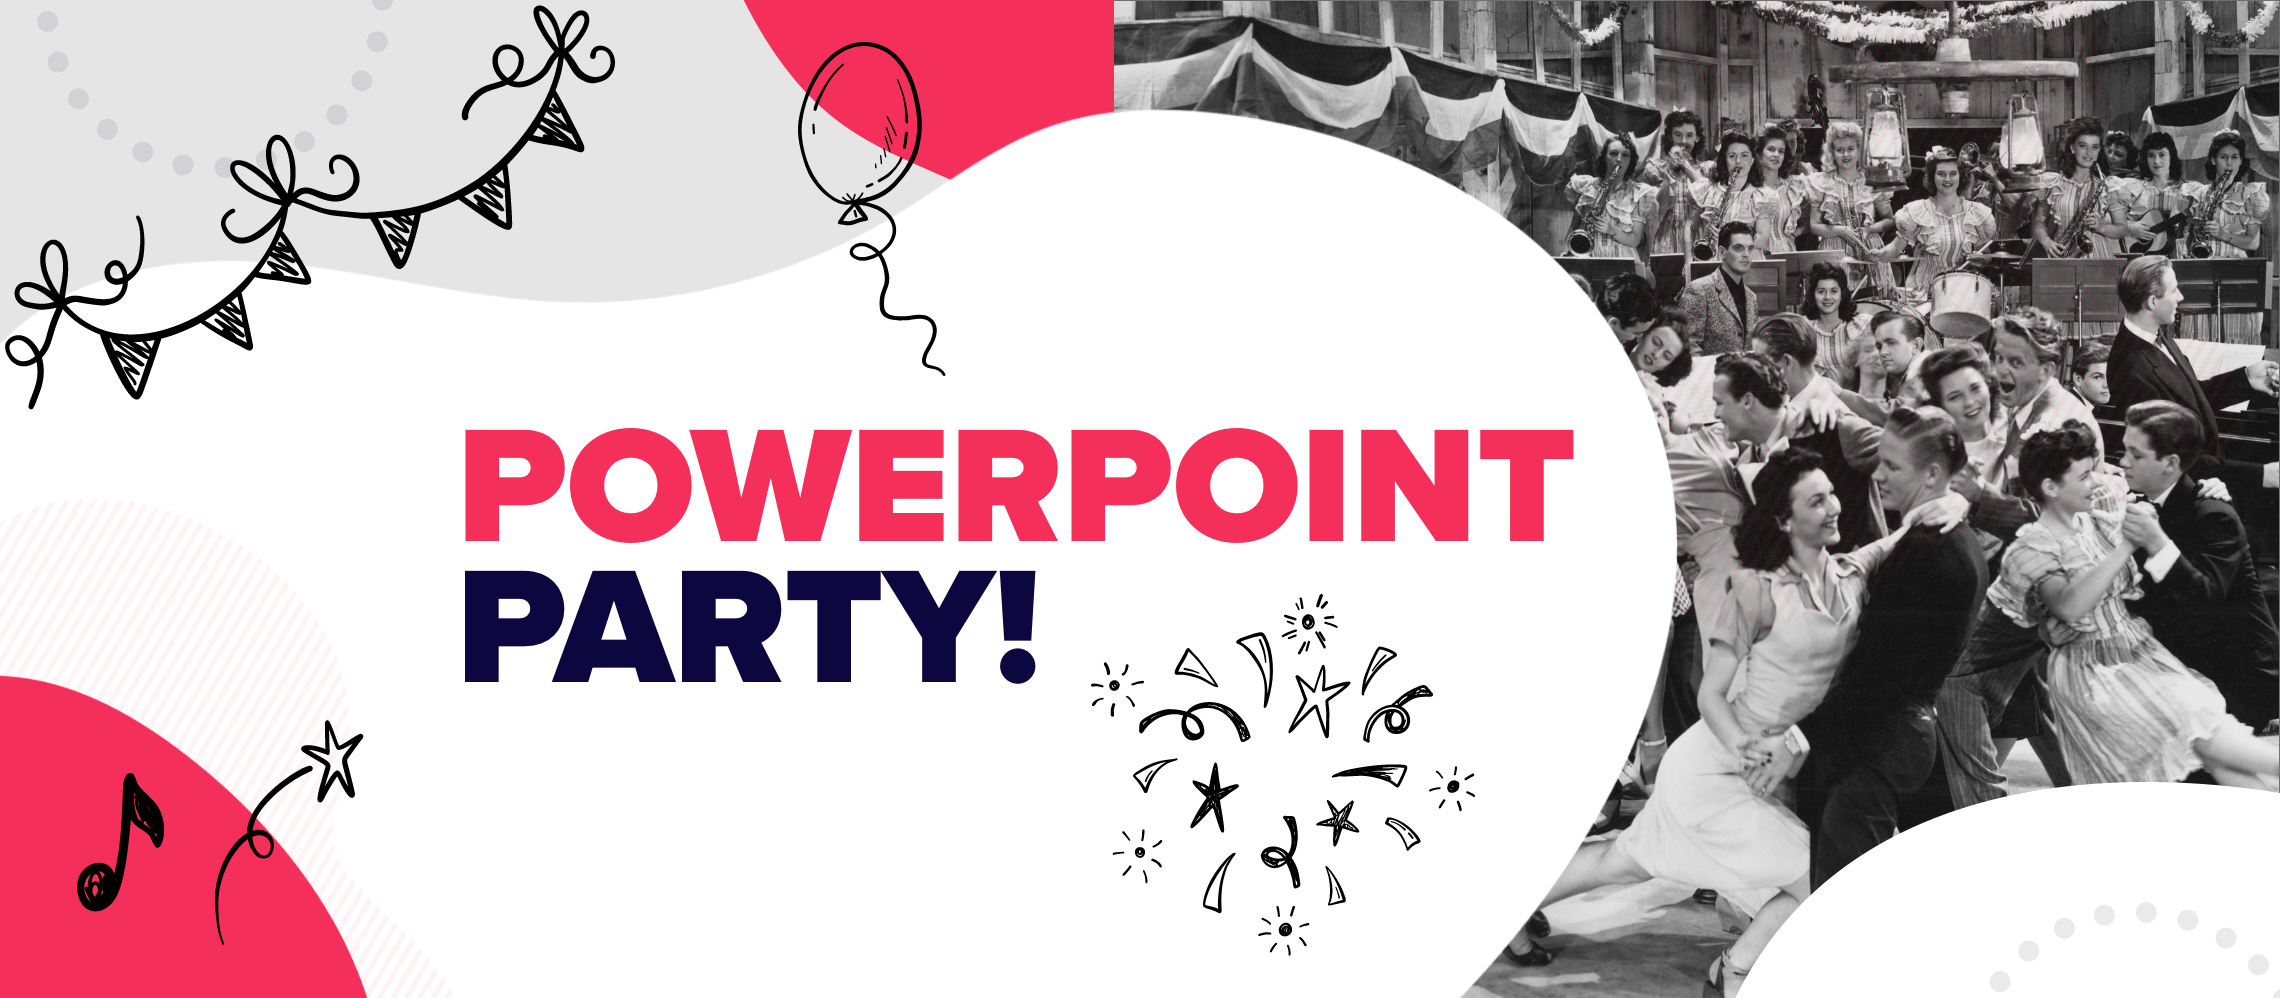 PowerPoint party time: throw the virtual event of the year.